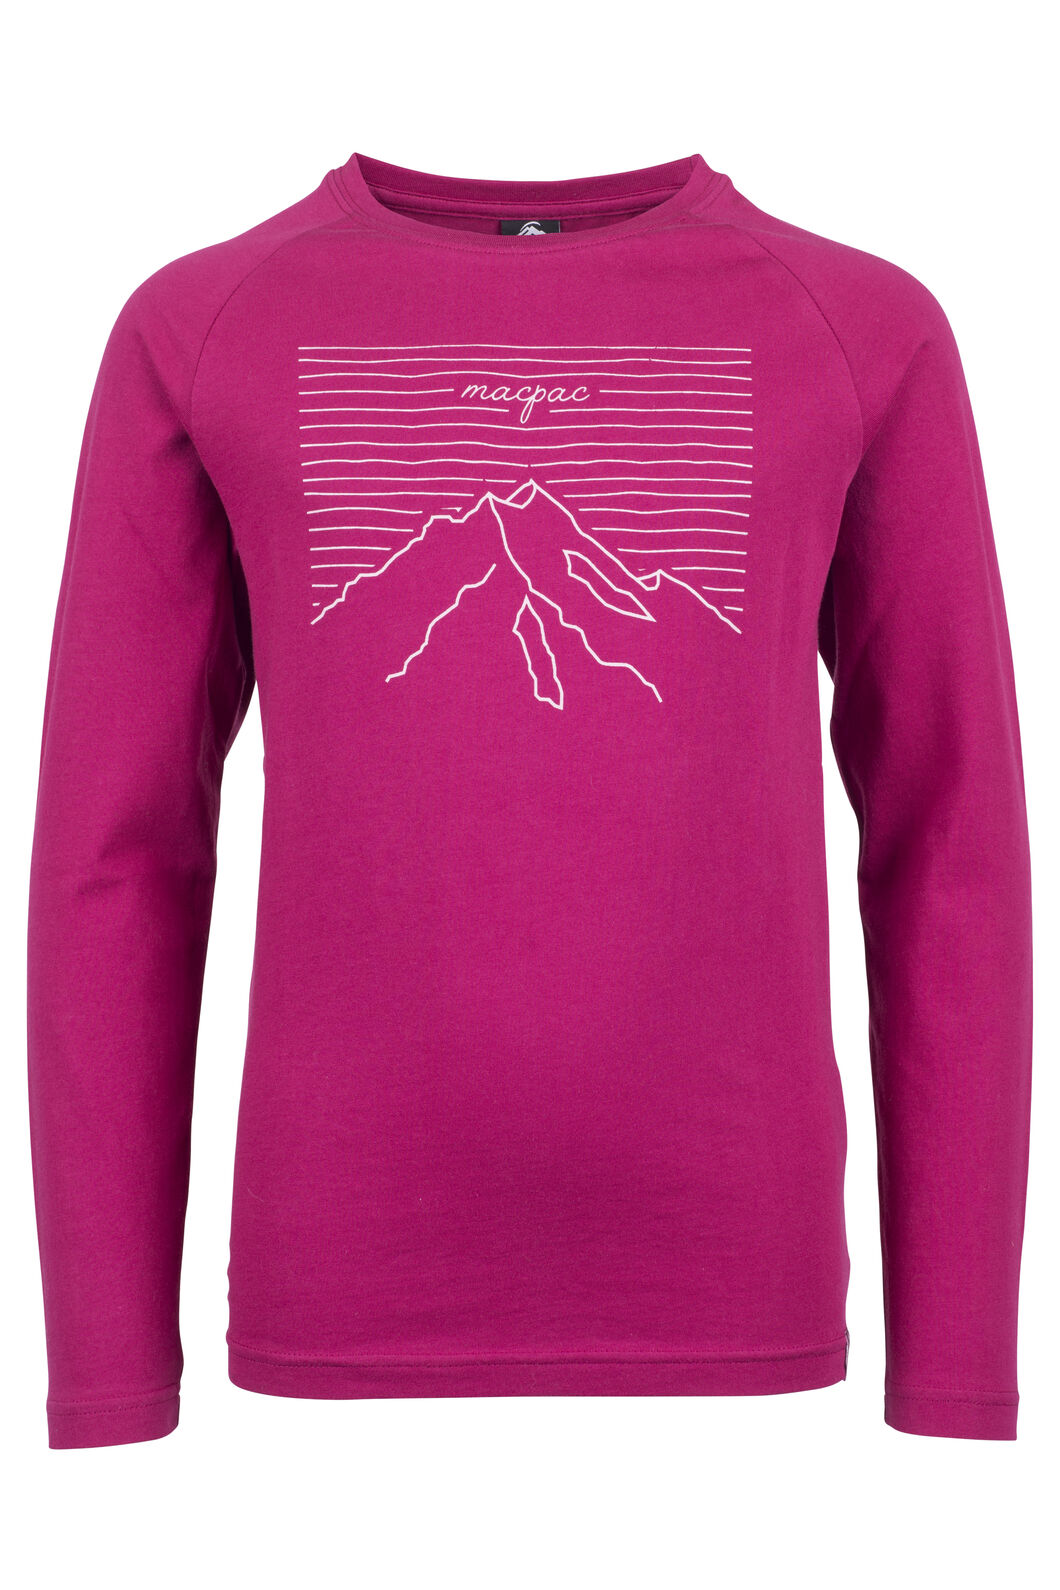 Macpac Summit Long Sleeve Tee - Kids', Beet Red, hi-res